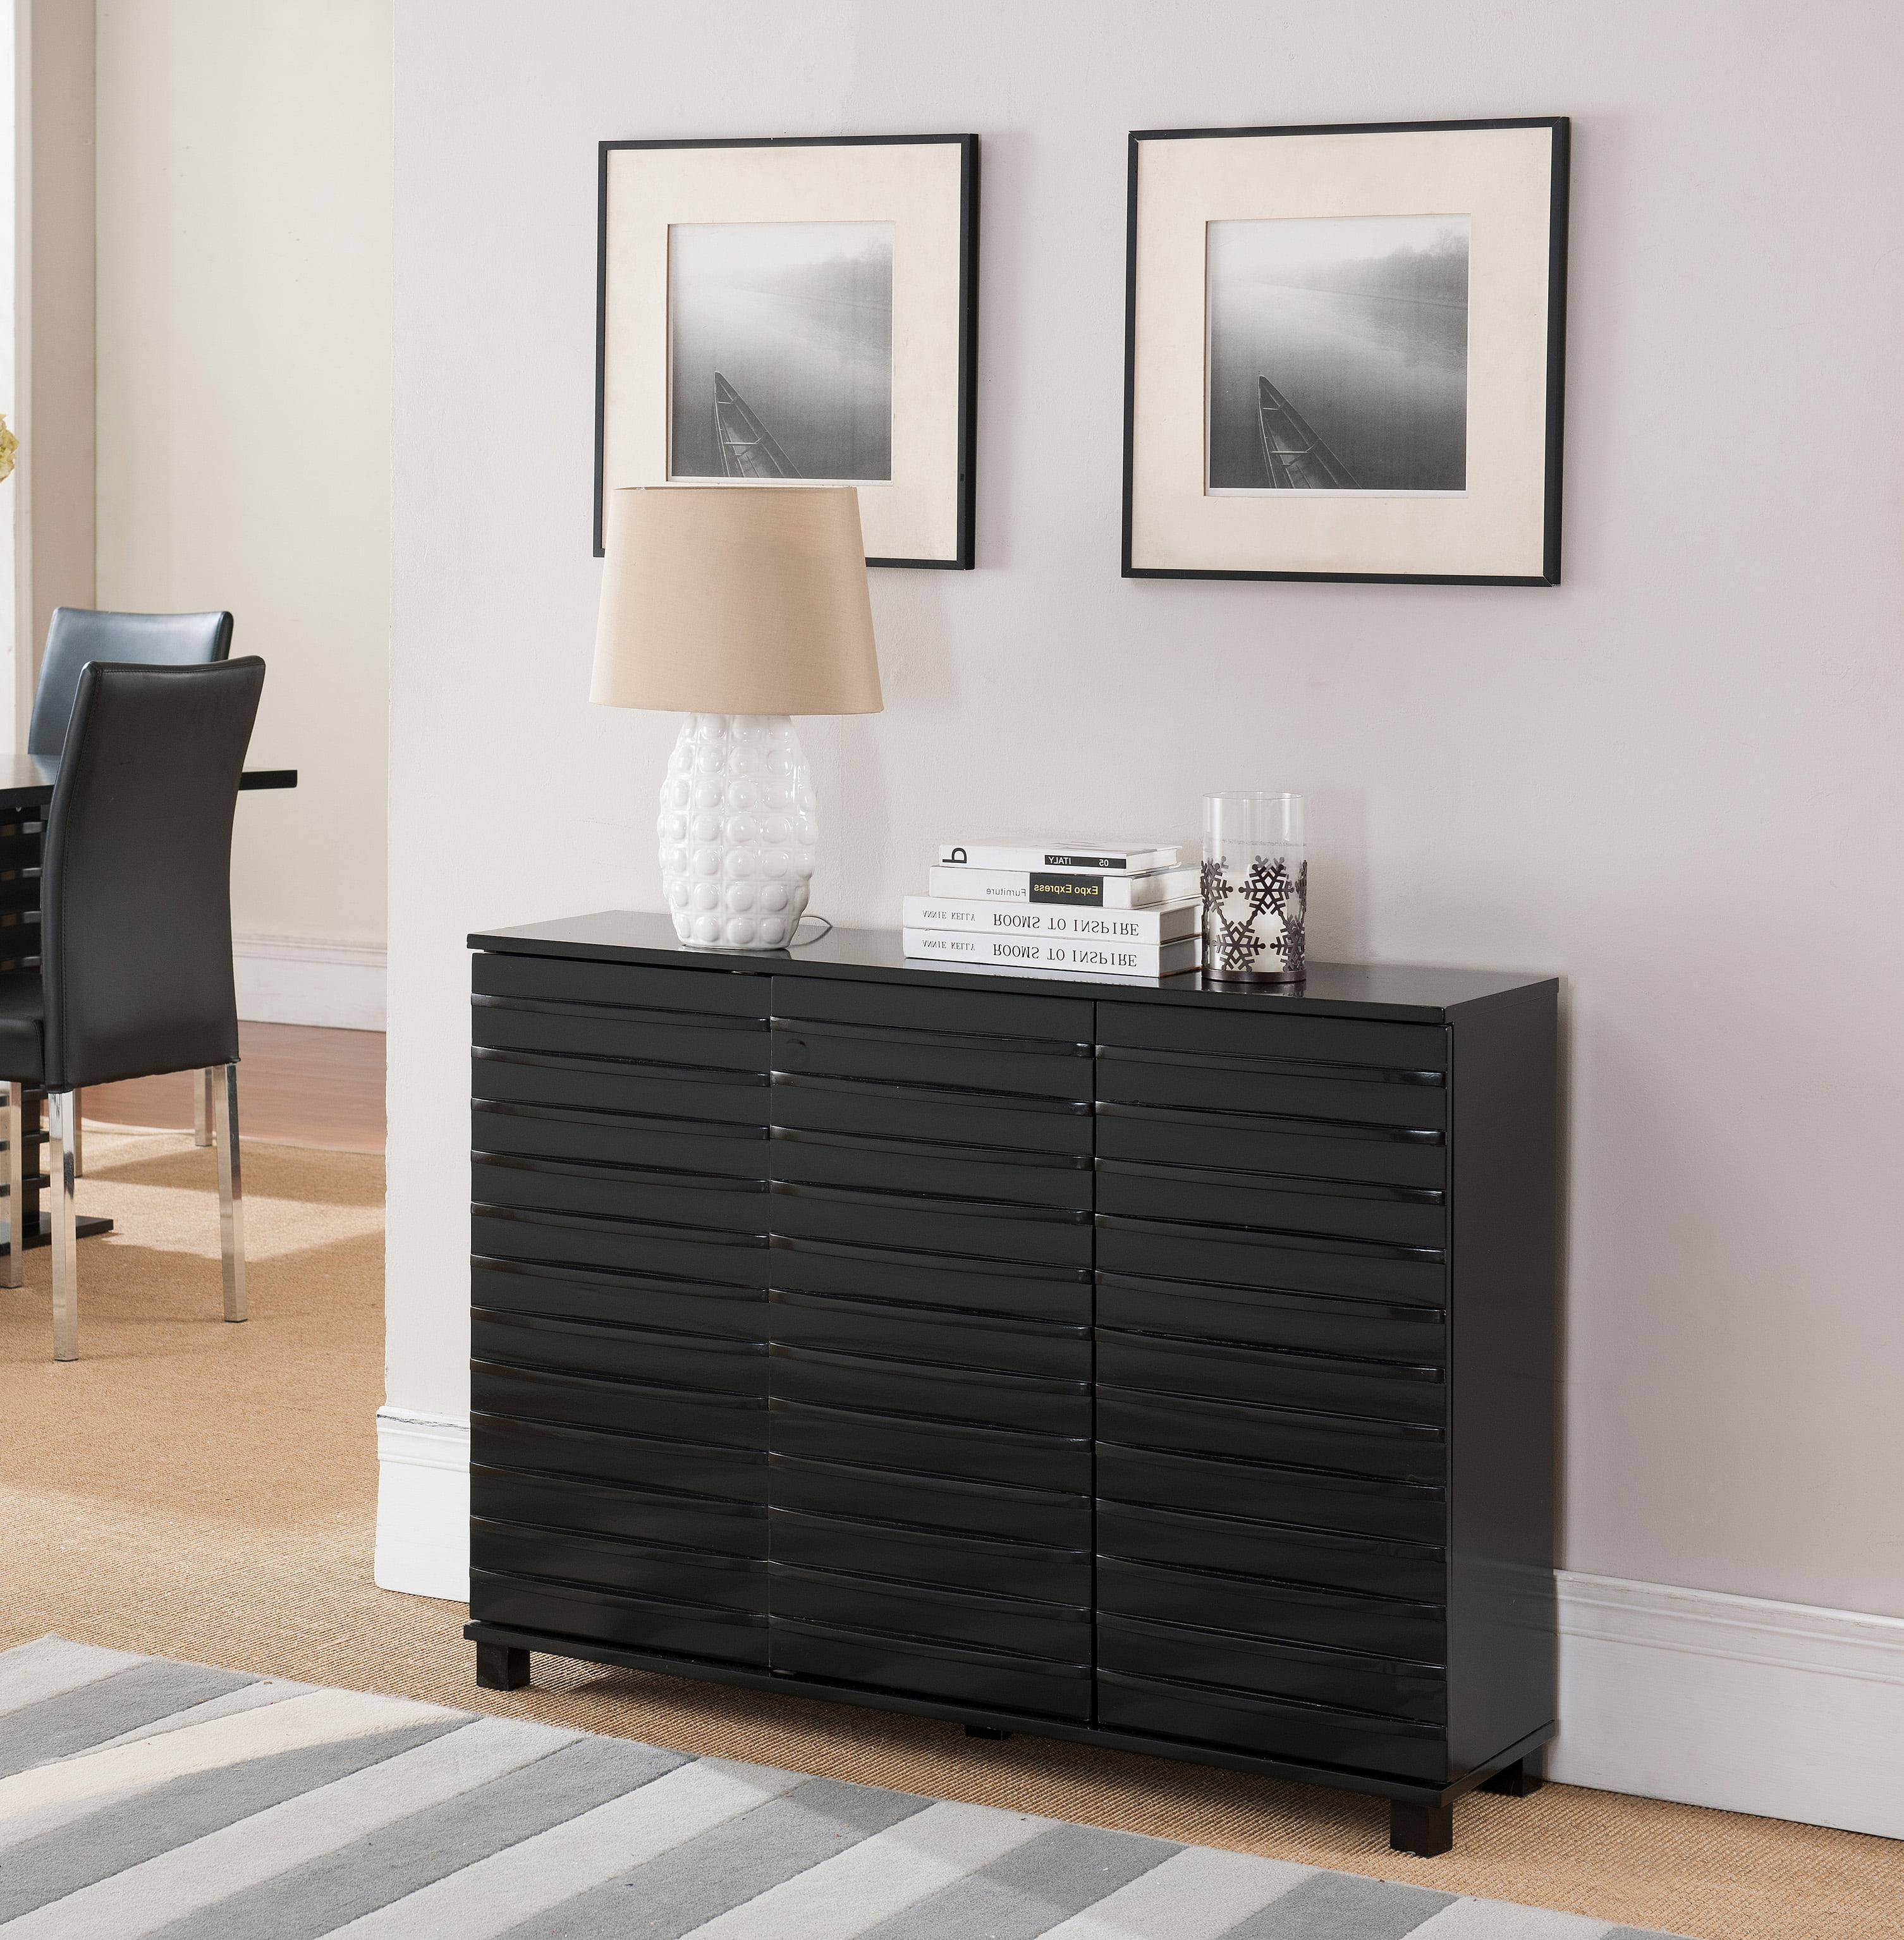 Black Wood Contemporary Sideboard Buffet Console Table With Cabinet Doors & Storage by Pilaster Designs